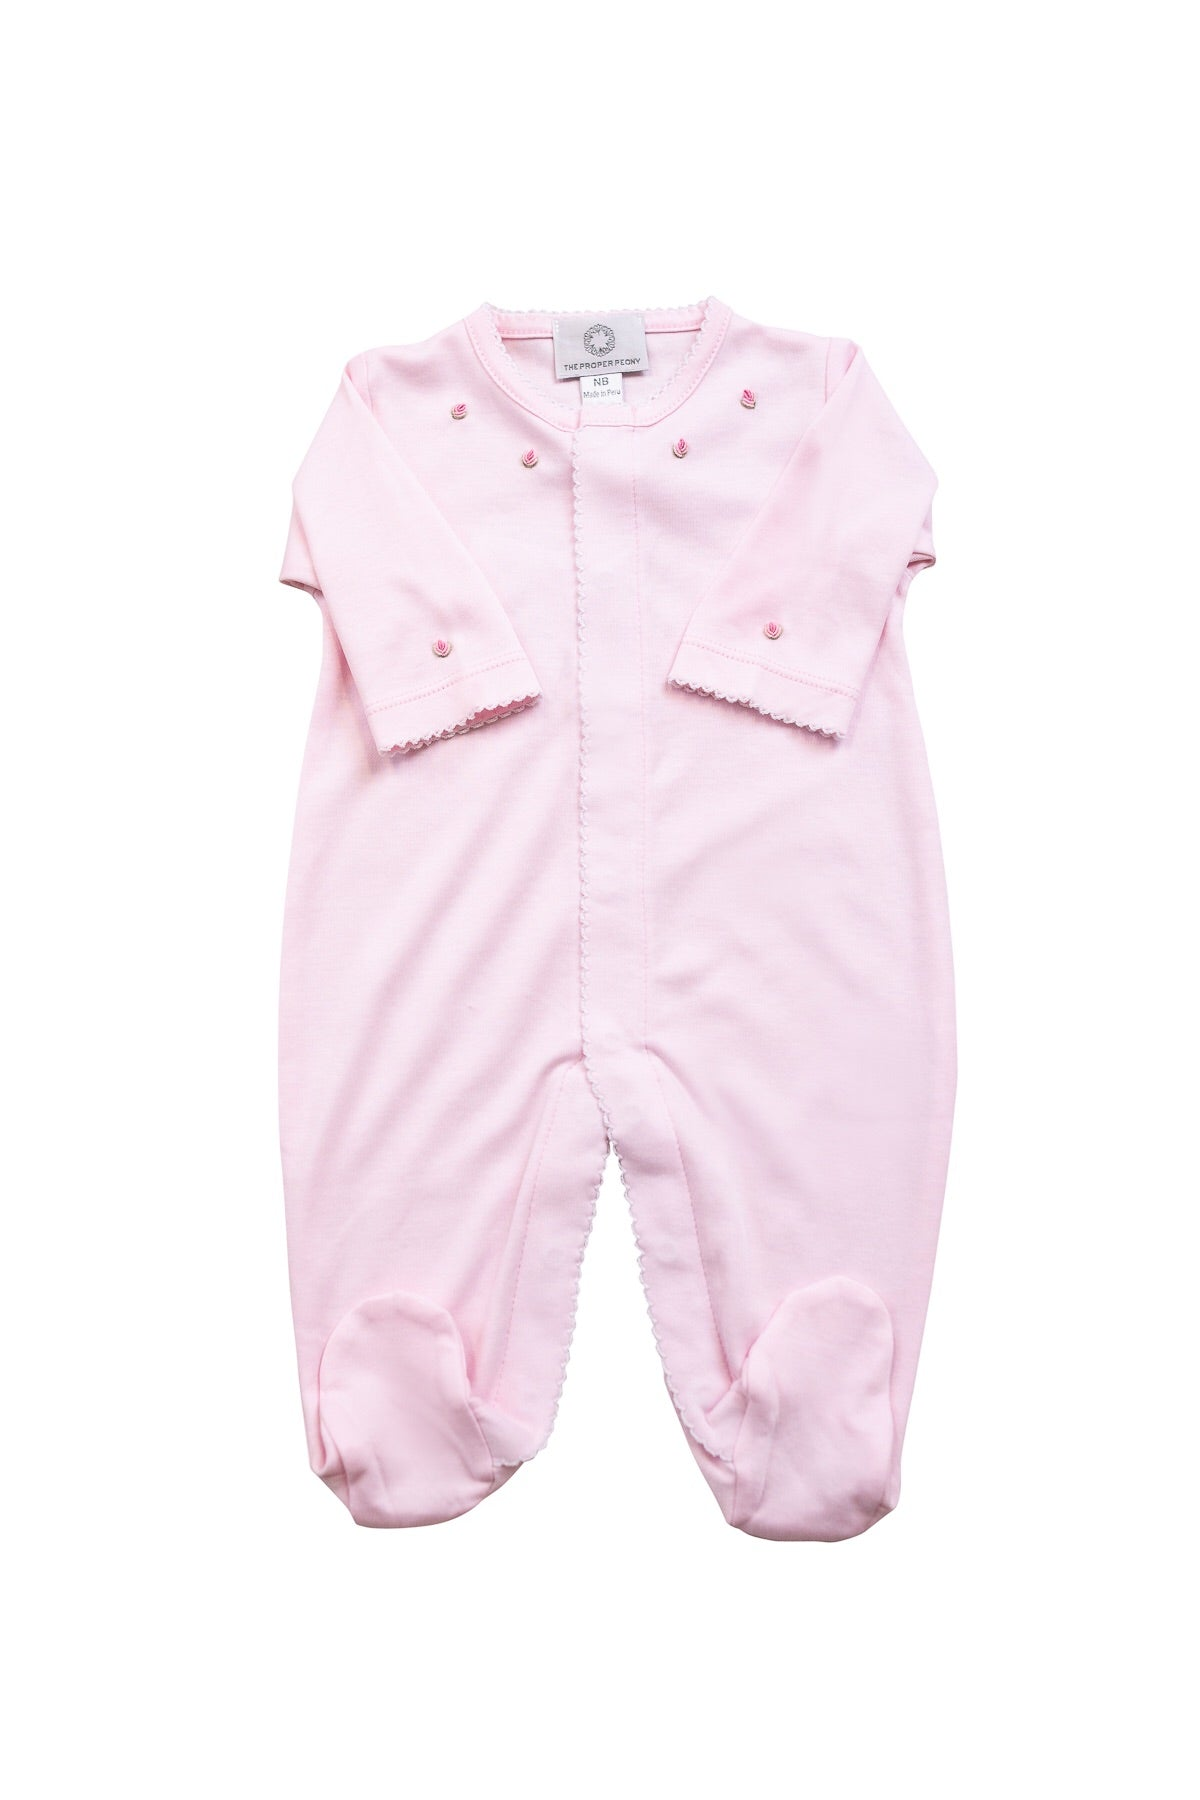 The Proper Peony Pima cotton pink footie